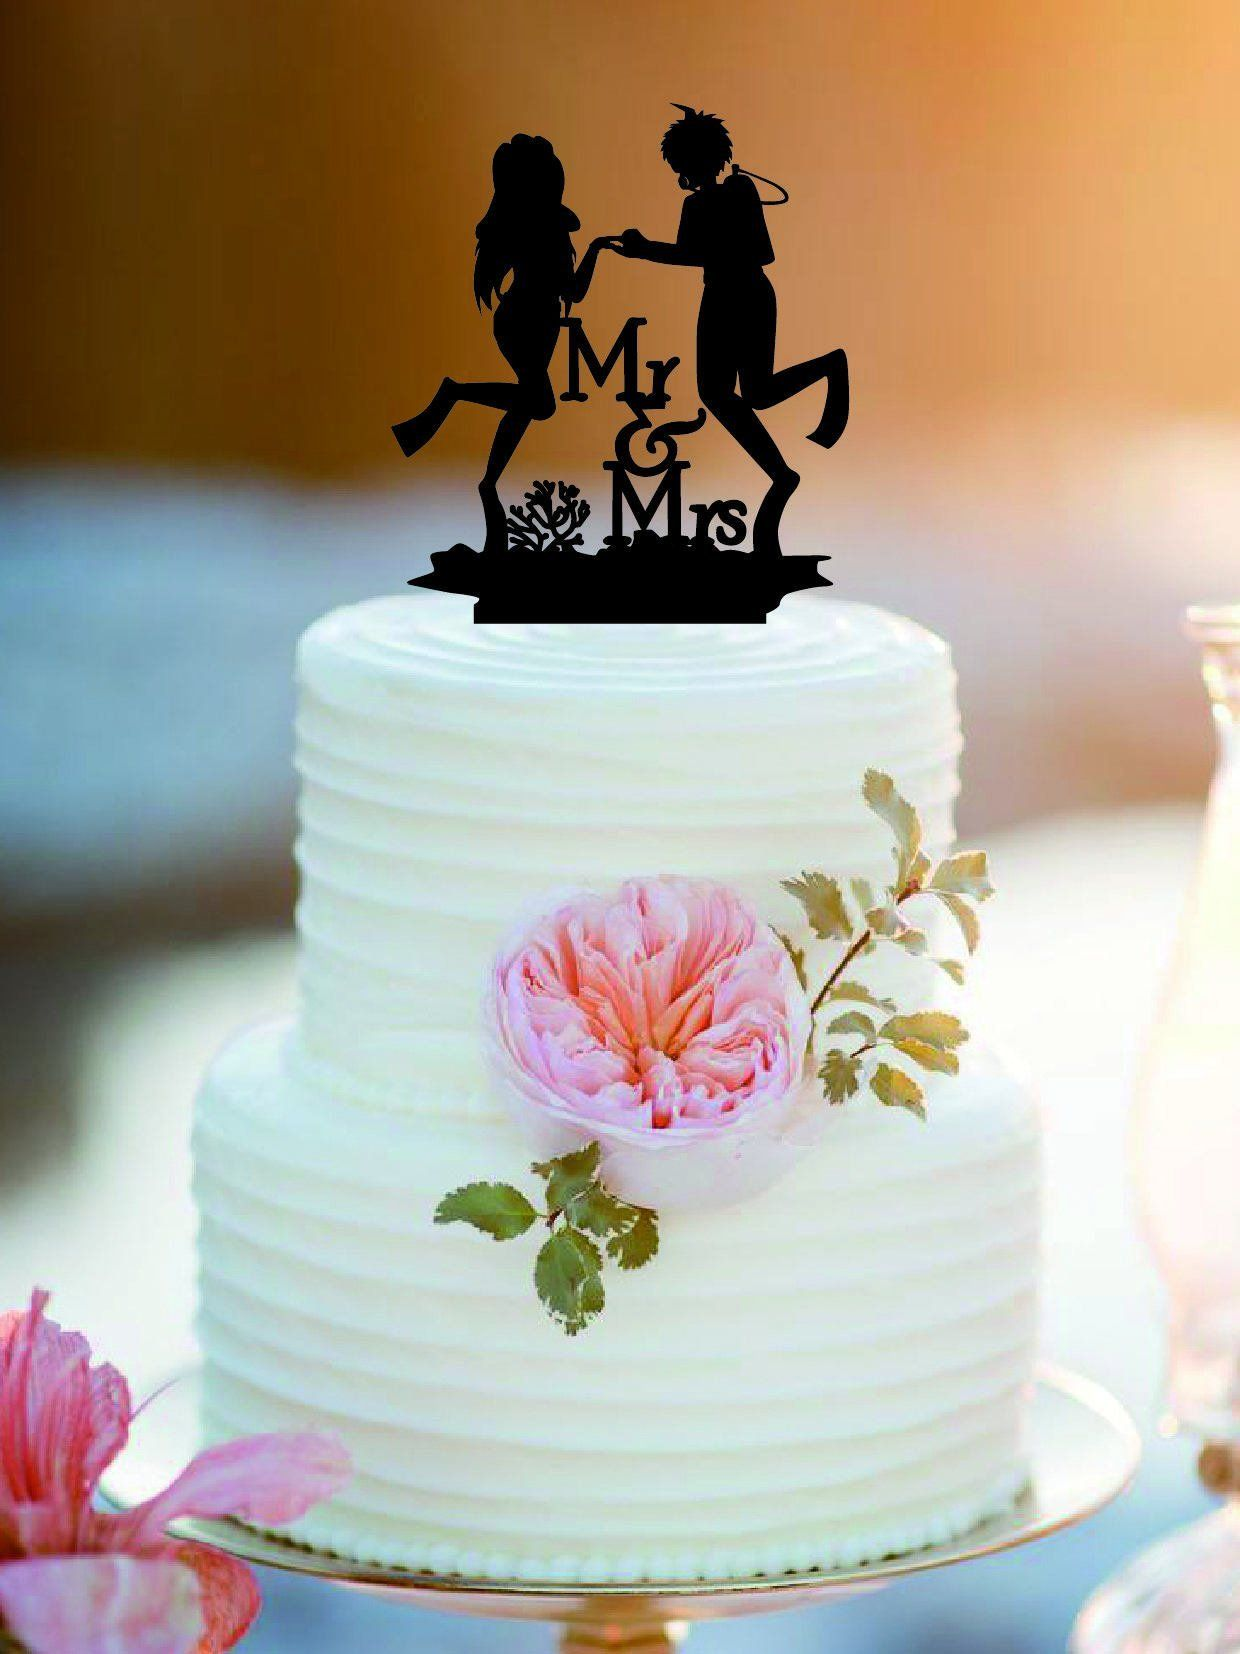 Customized Diving Wedding Cake Topper Mr And Mrs Scuba ABOUT THE CAKE TOPPER Material Acrylic Or Wood Size